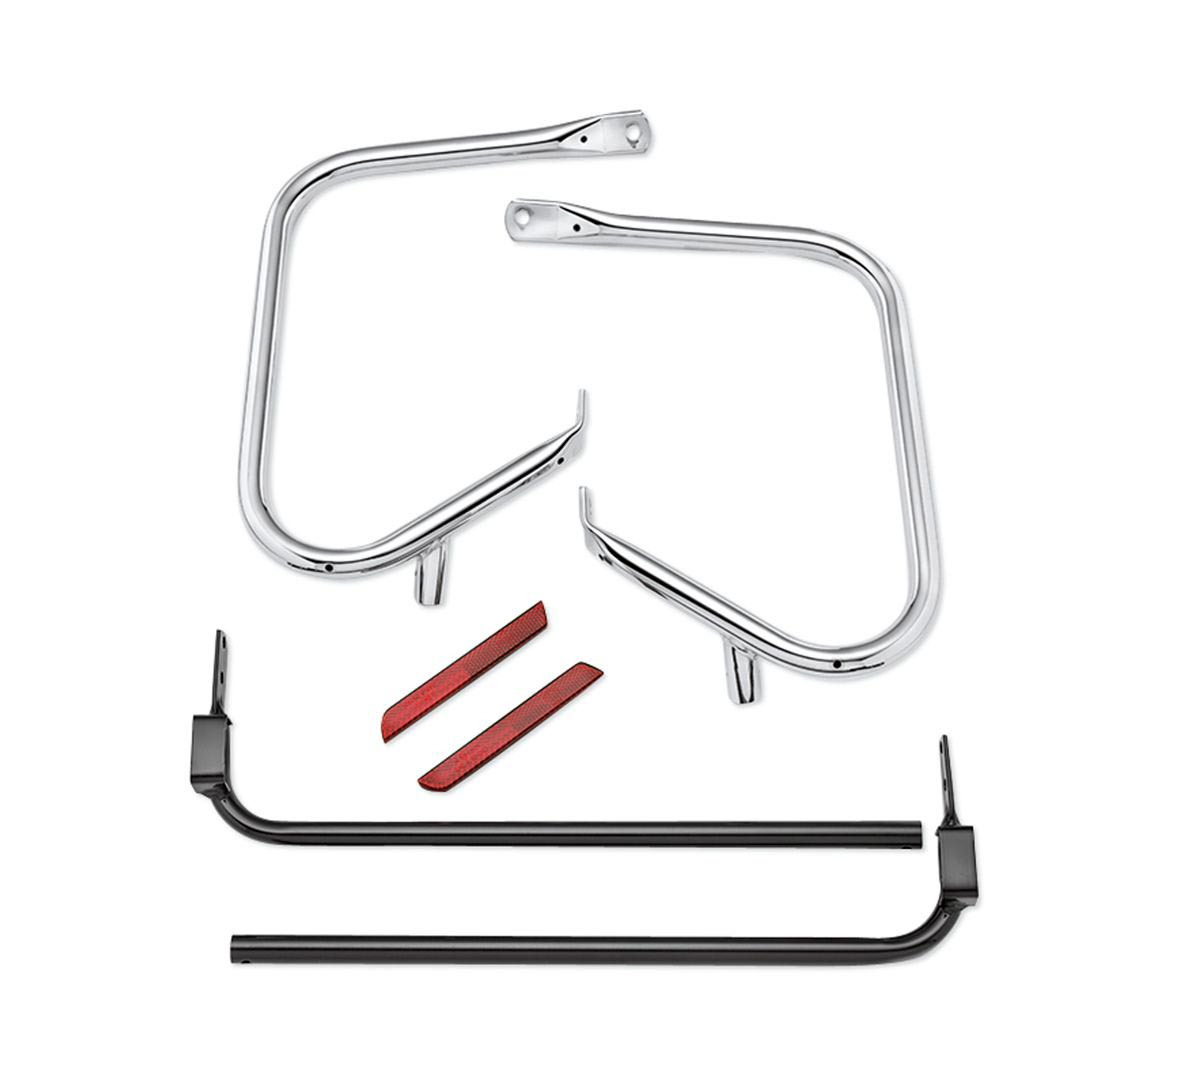 49282-09B H-D Rear Saddlebag Guard Kit chrome Touring 09-13